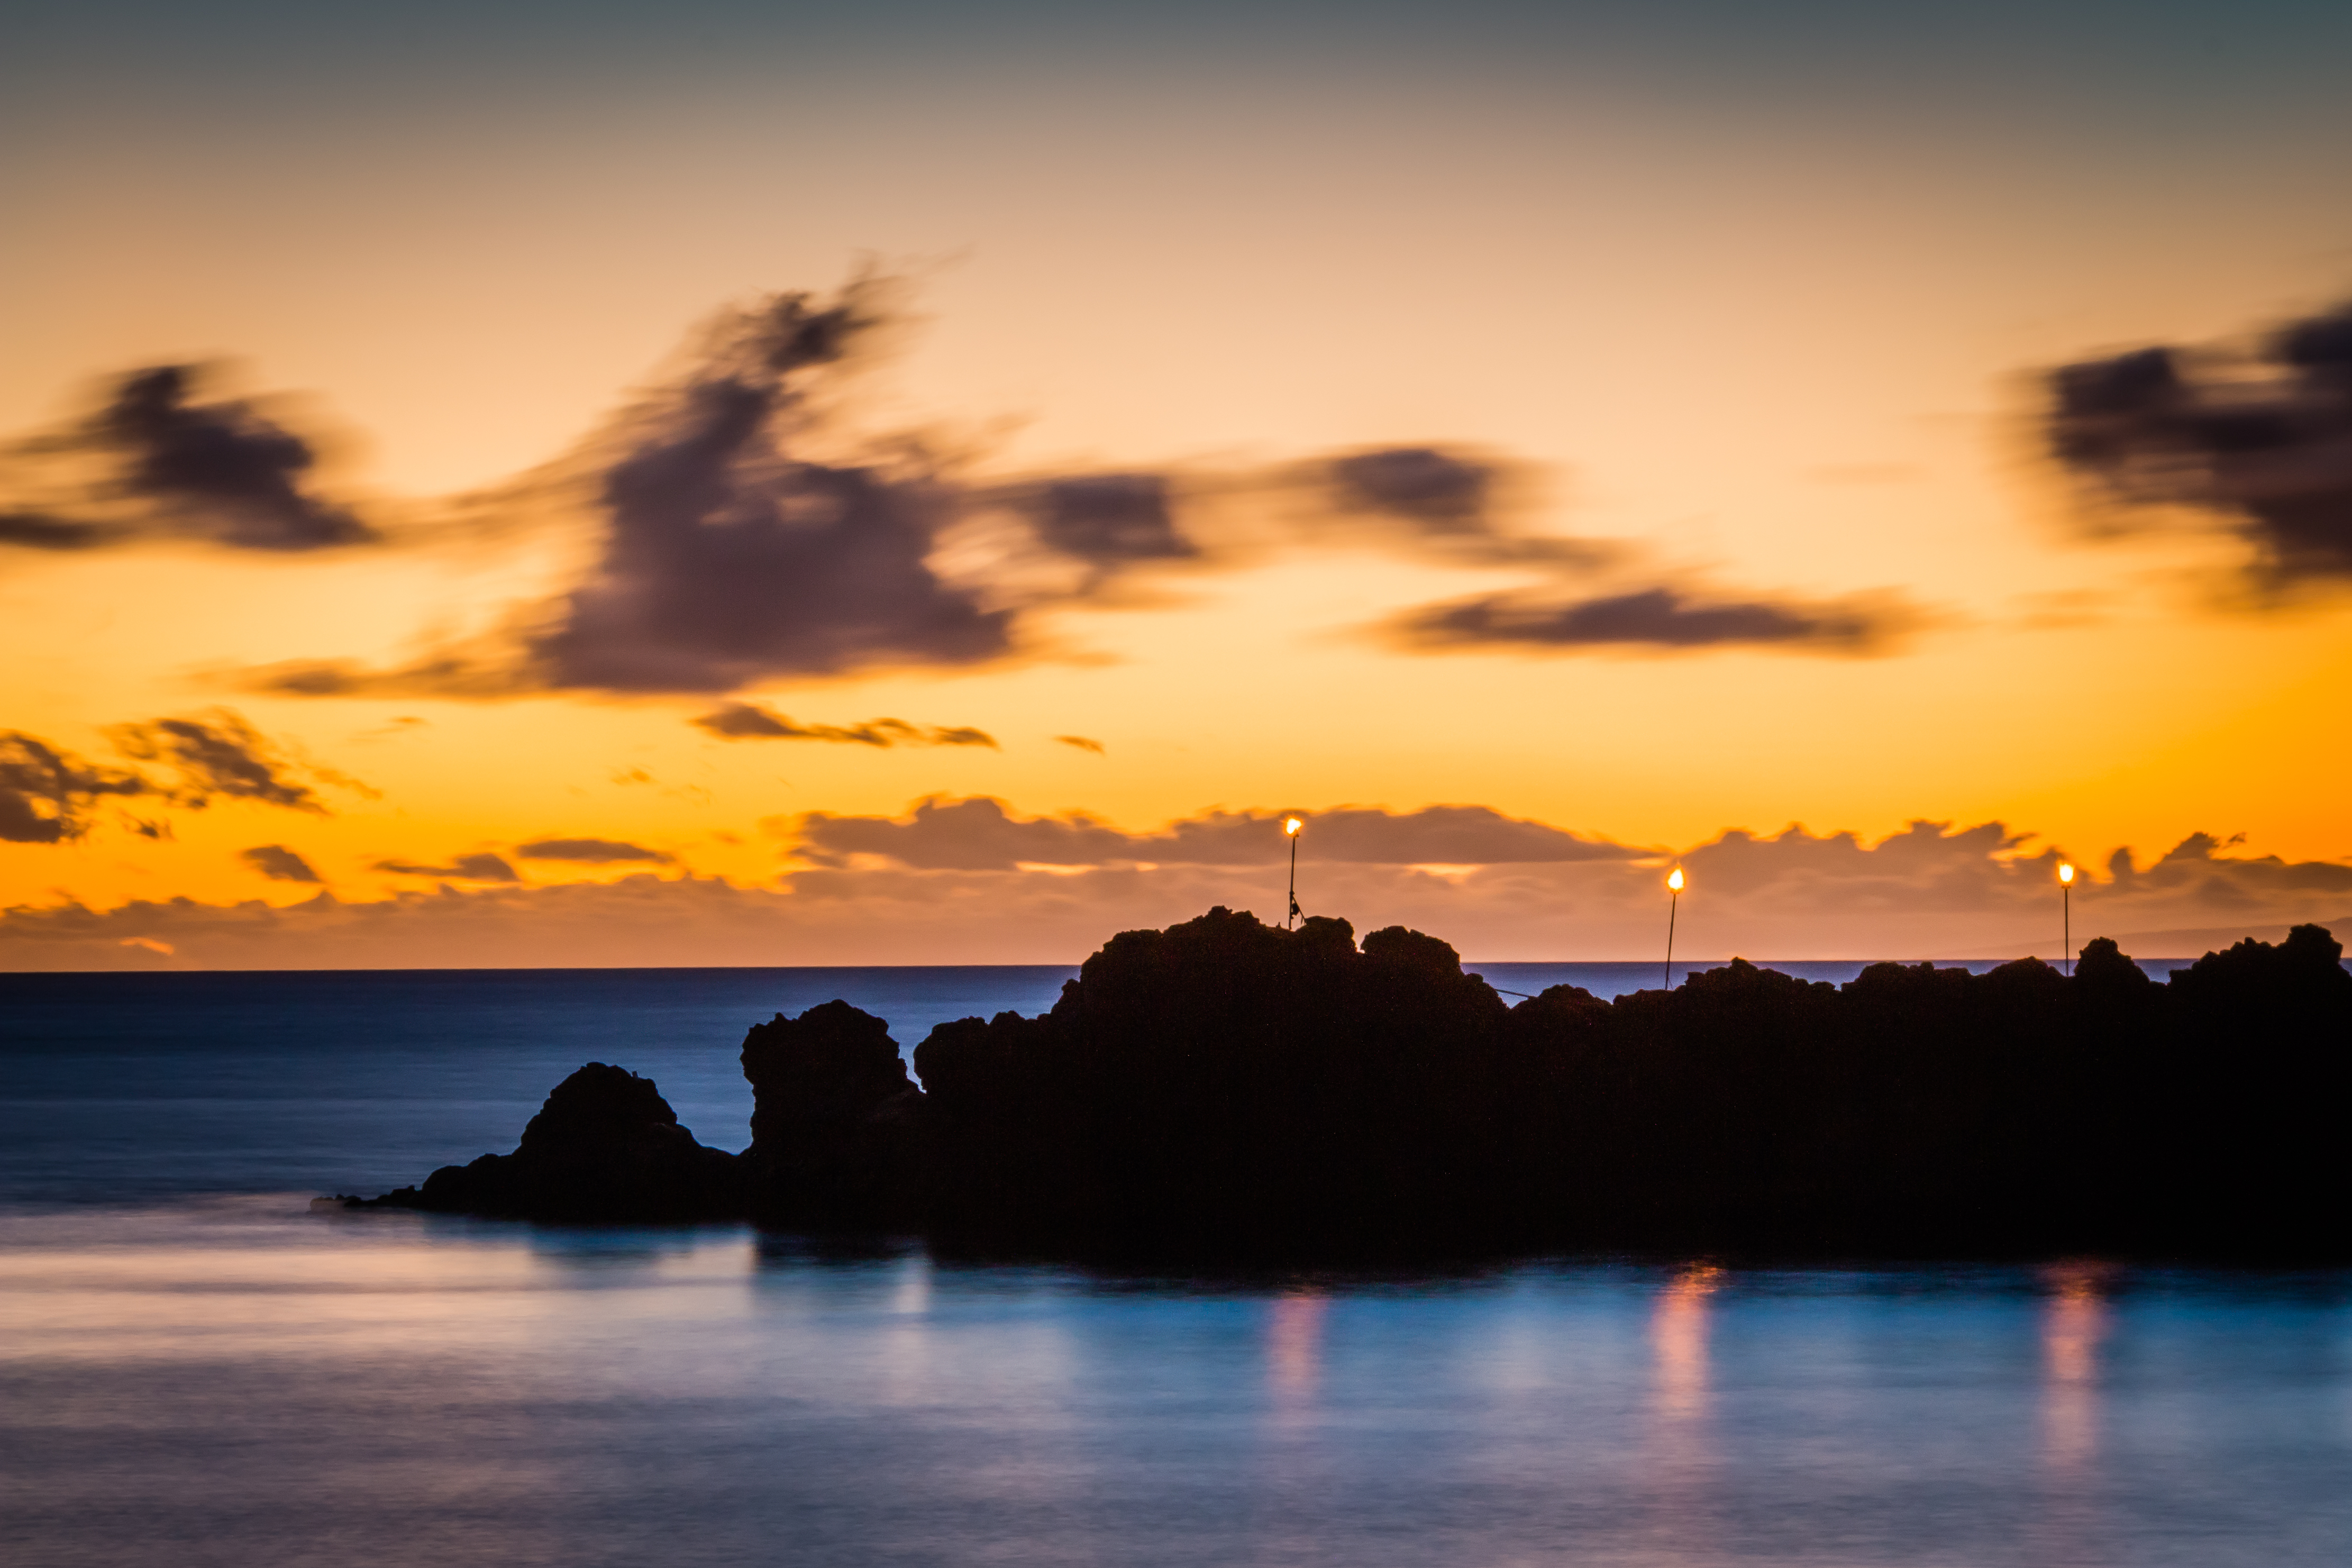 HD Wallpaper Black Rock sunset Kaanapali Beach Maui 4446x2964